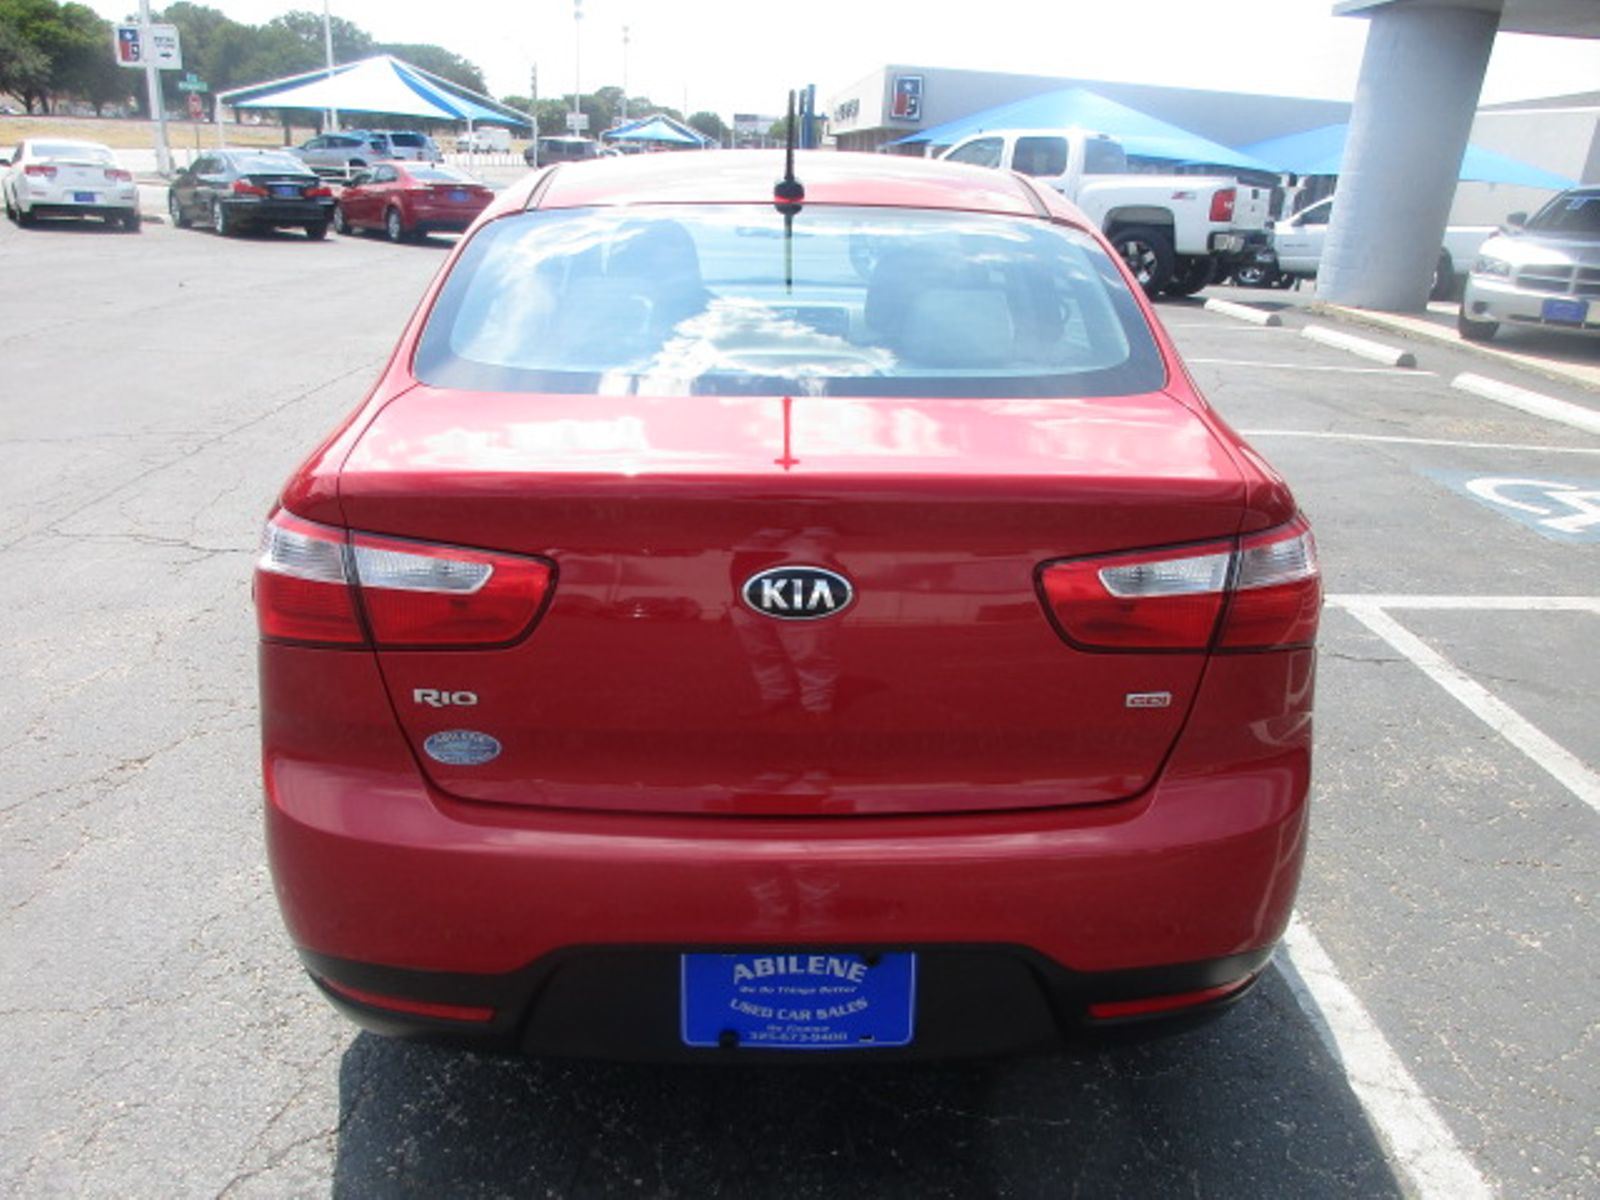 2015 kia rio lx abilene tx abilene used car sales. Black Bedroom Furniture Sets. Home Design Ideas